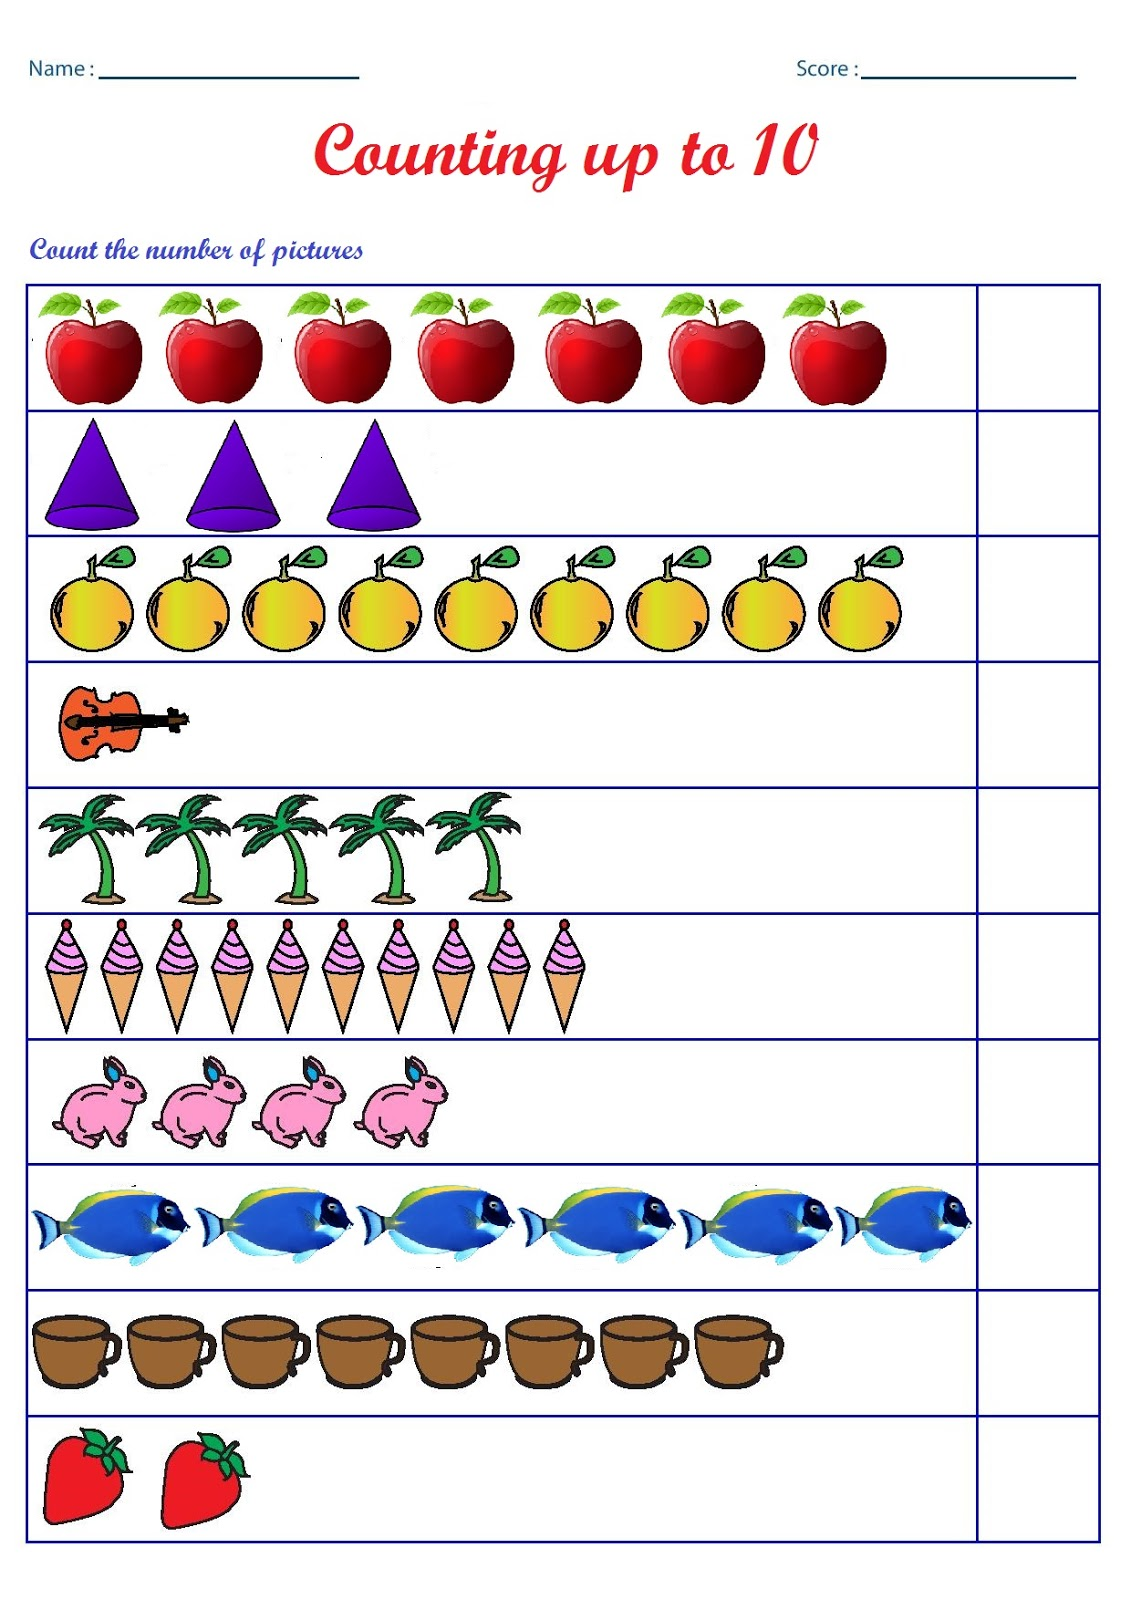 kindergarten worksheets counting worksheets count the number of pictures up to 10. Black Bedroom Furniture Sets. Home Design Ideas